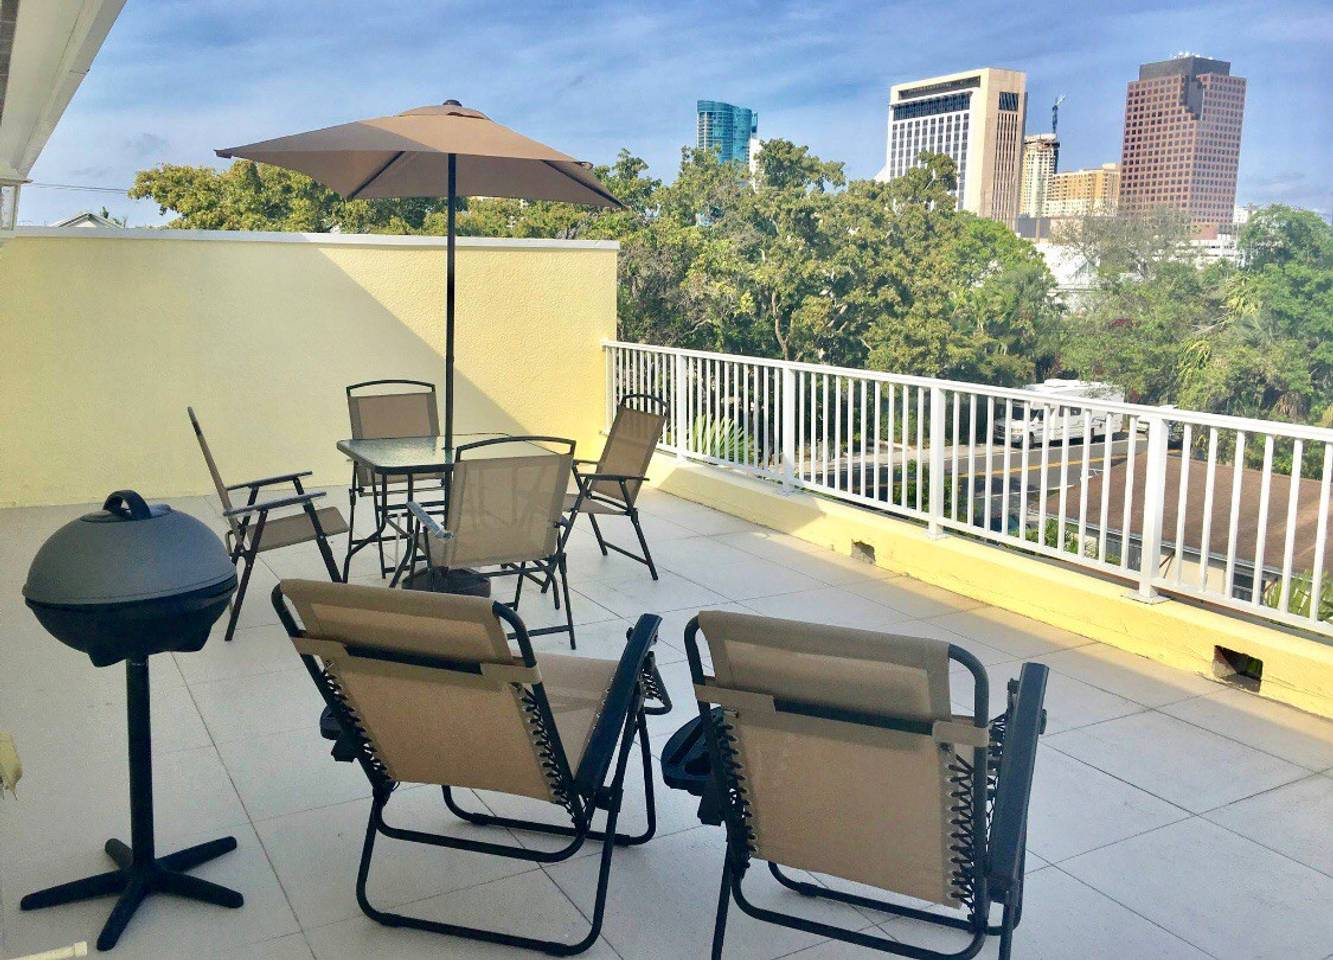 4 Bedroom House Close to Everything In FLL #906 photo 16318352